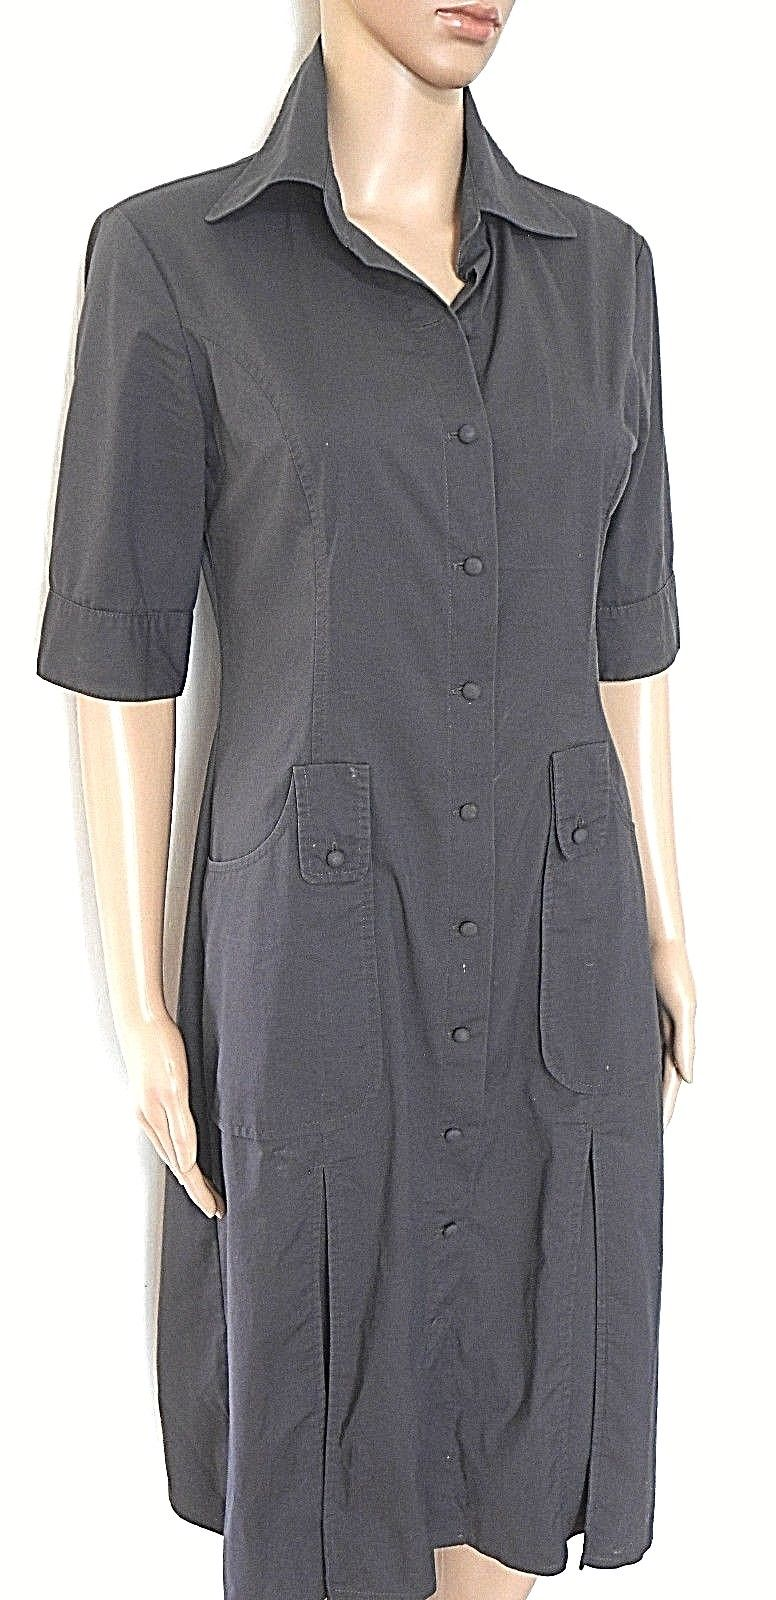 Cue shirt dress, charcoal cotton blend, sz. 10, with pockets & pleats, exc. cnd.